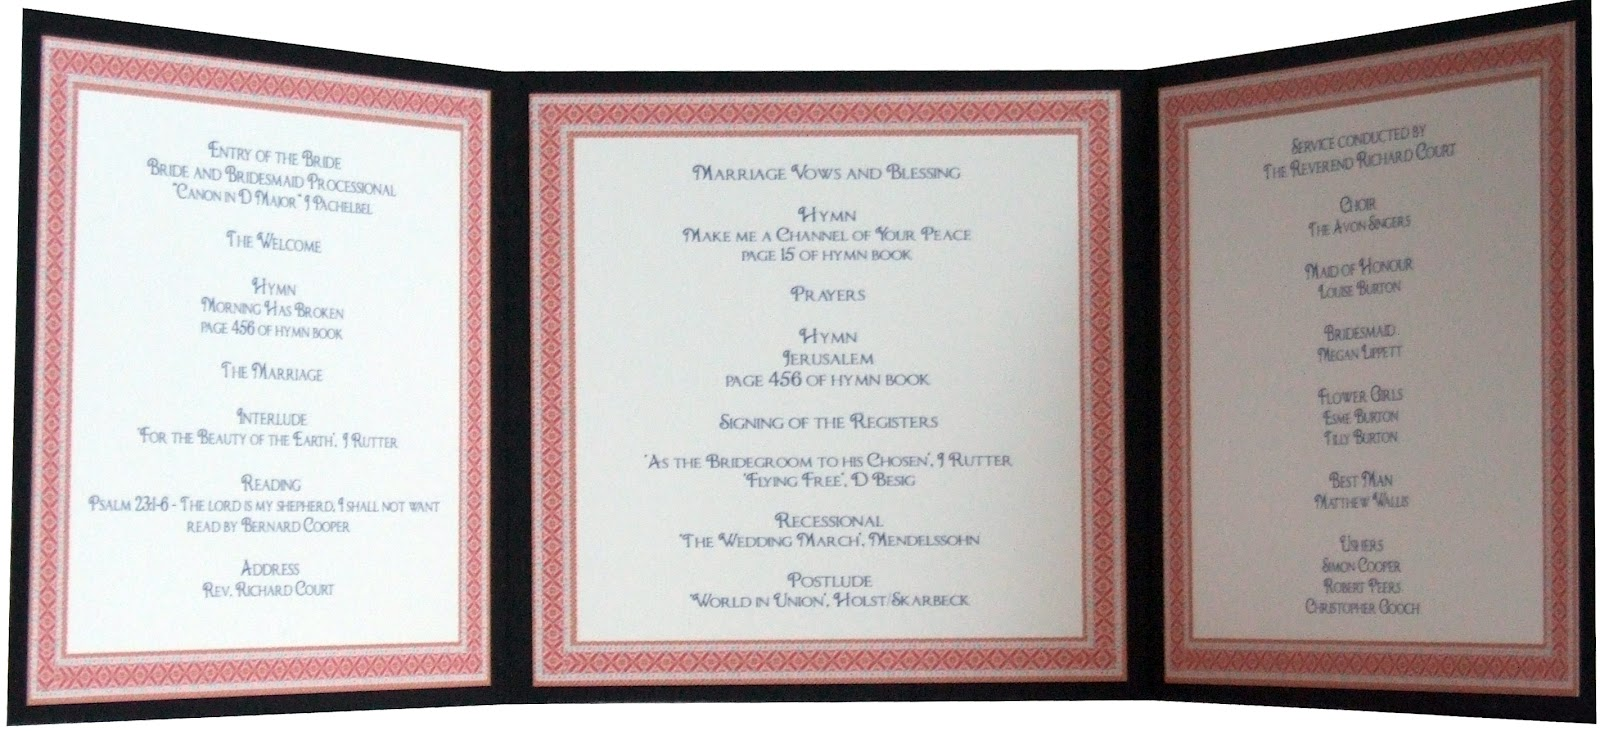 Knots and Kisses Wedding Stationery What Stationery To Order For